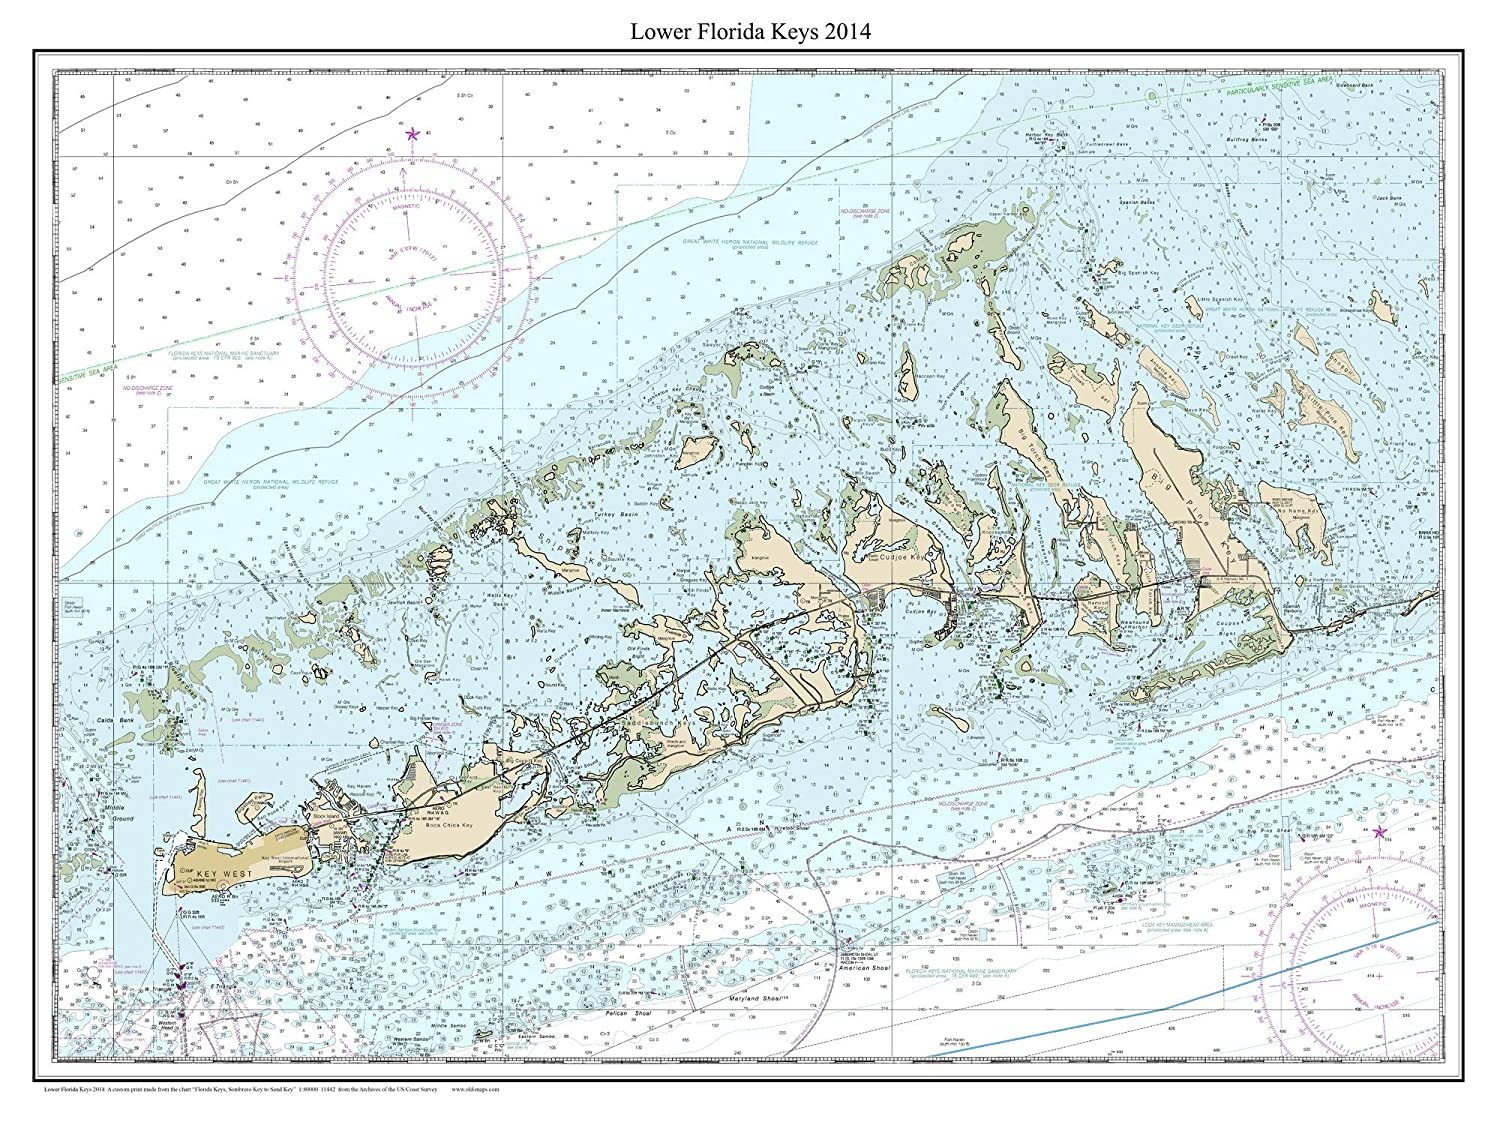 image relating to Printable Map of Florida Keys named : Small Florida Keys 2014 - Nautical Map Florida